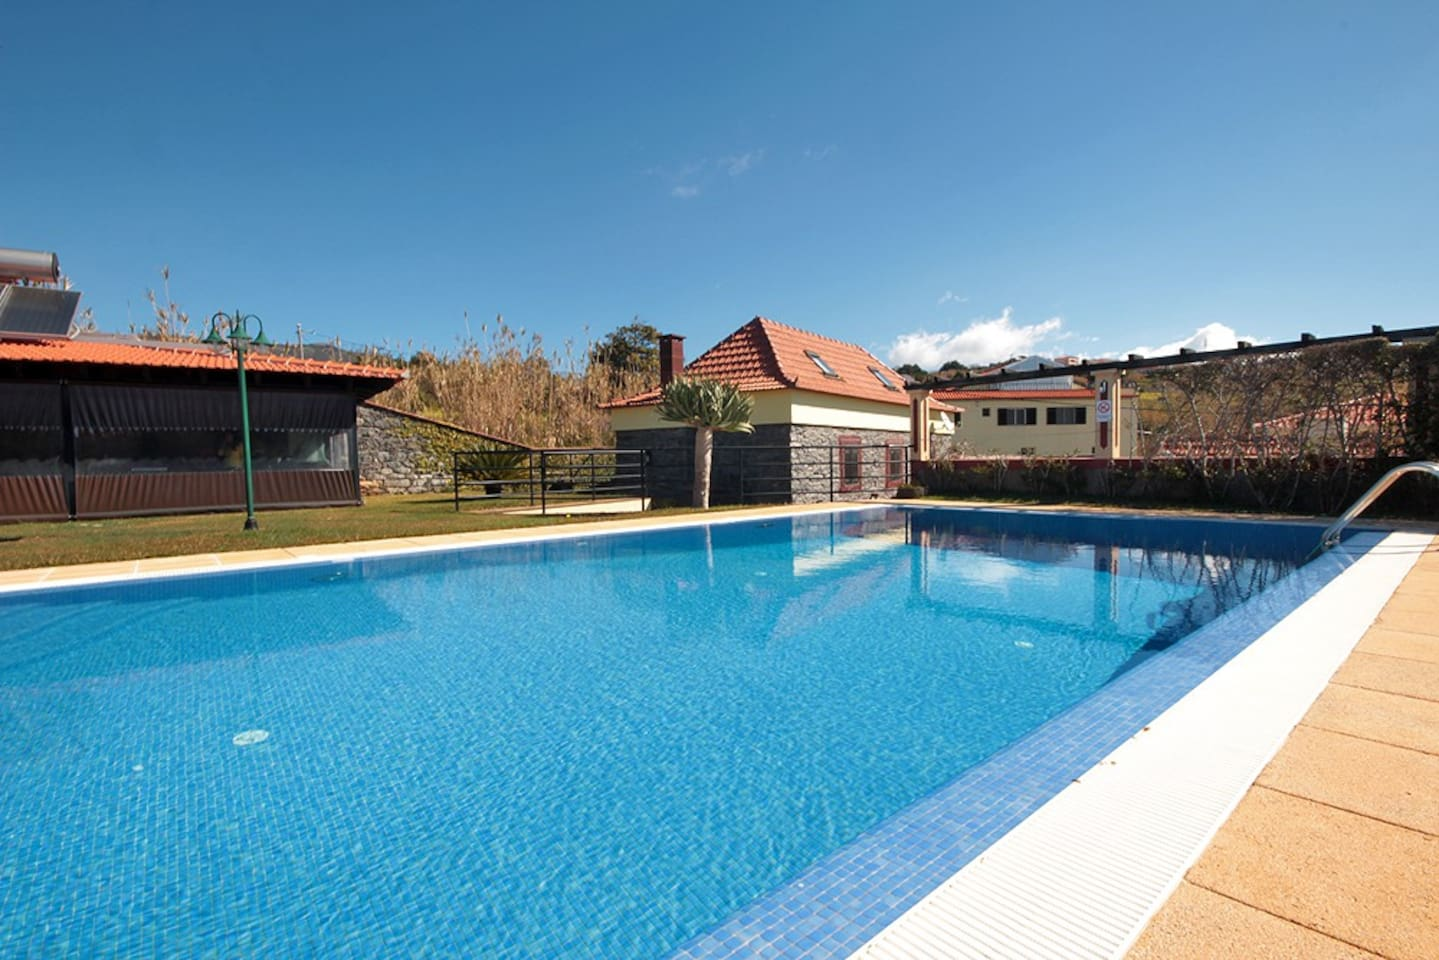 Pool and house in the background